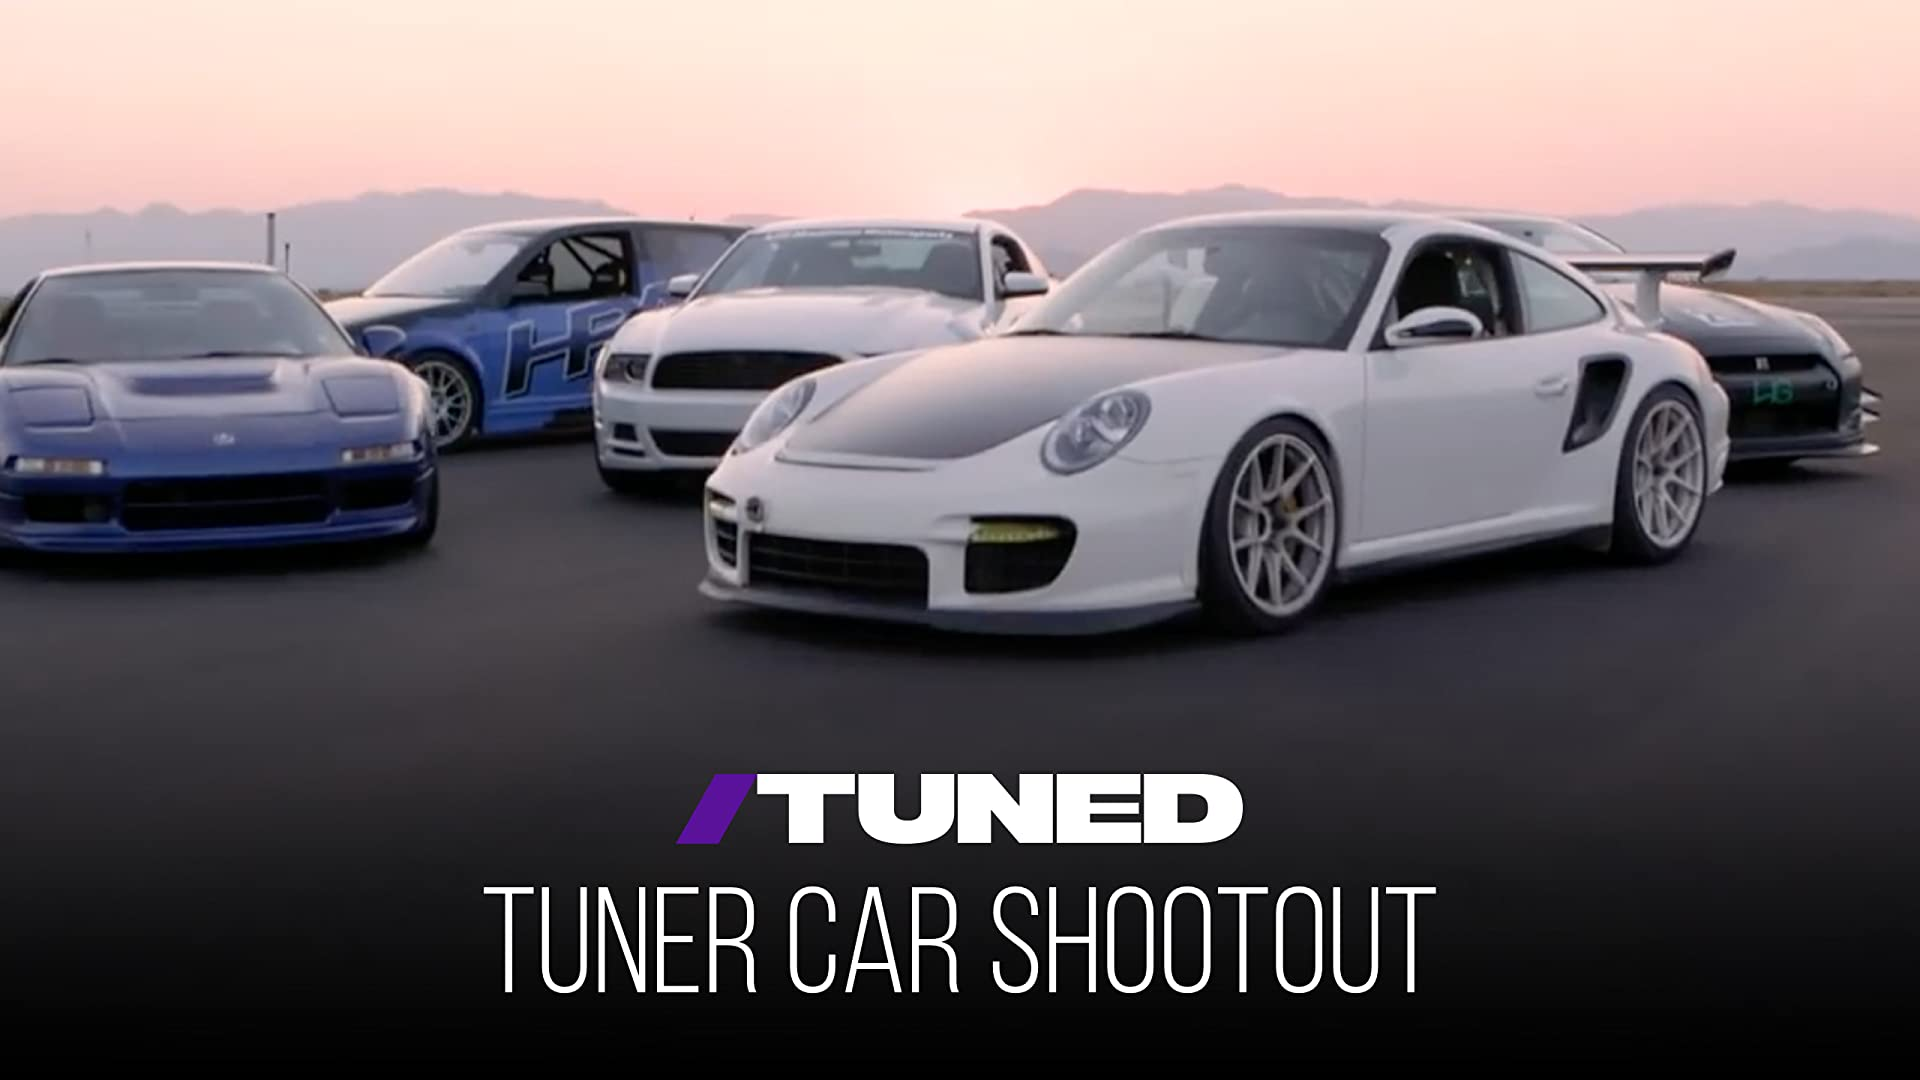 Tuned: Tuner Car Shootout